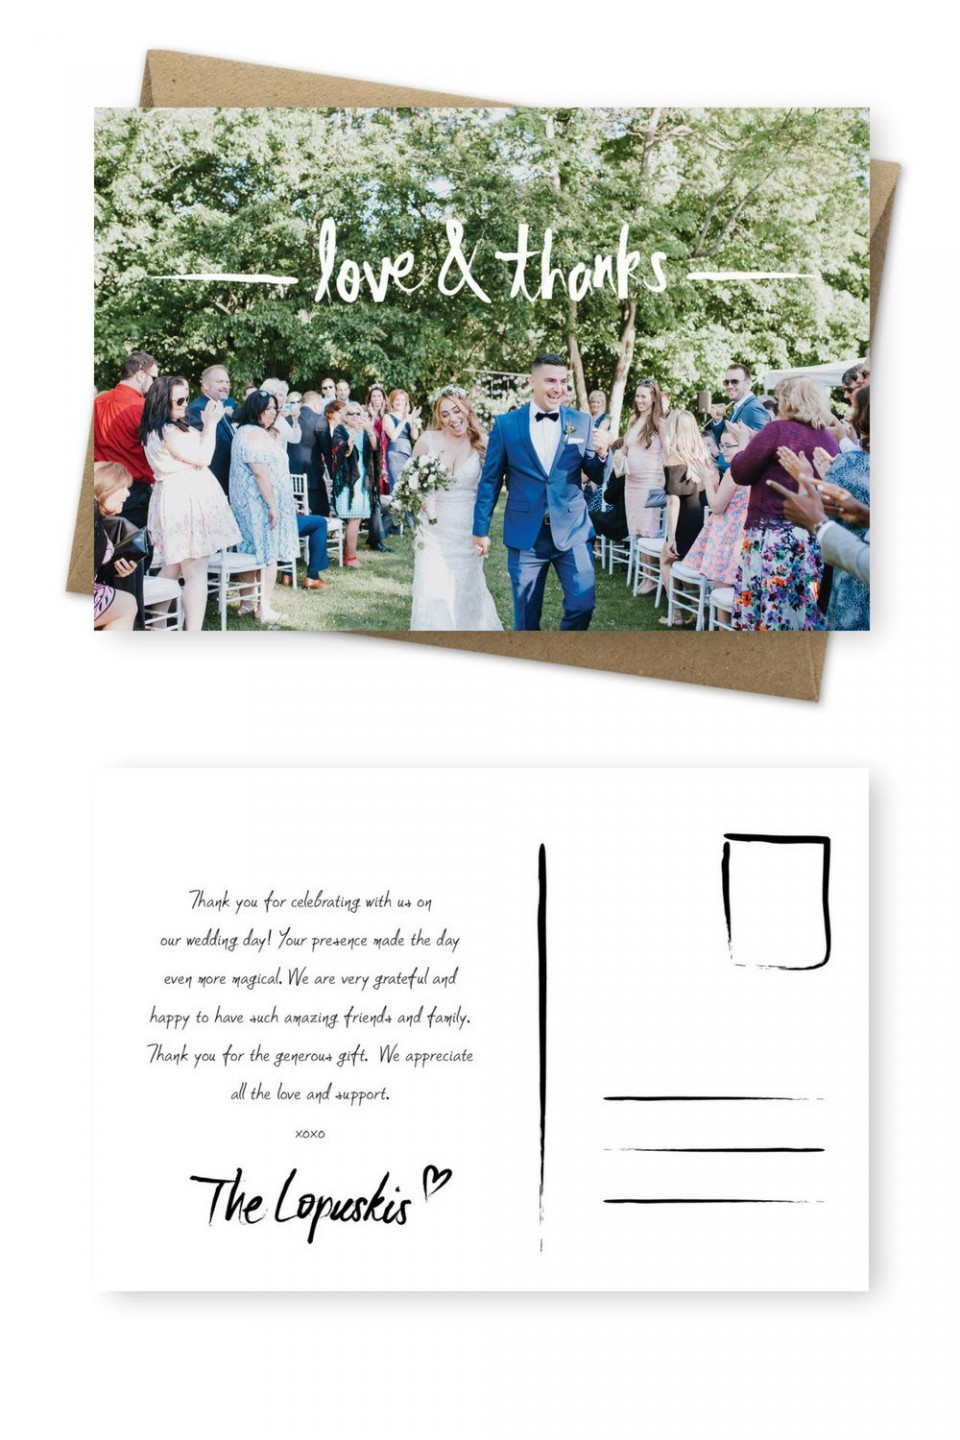 001 Unique Wedding Thank You Card Template Image  Photoshop Word Etsy960